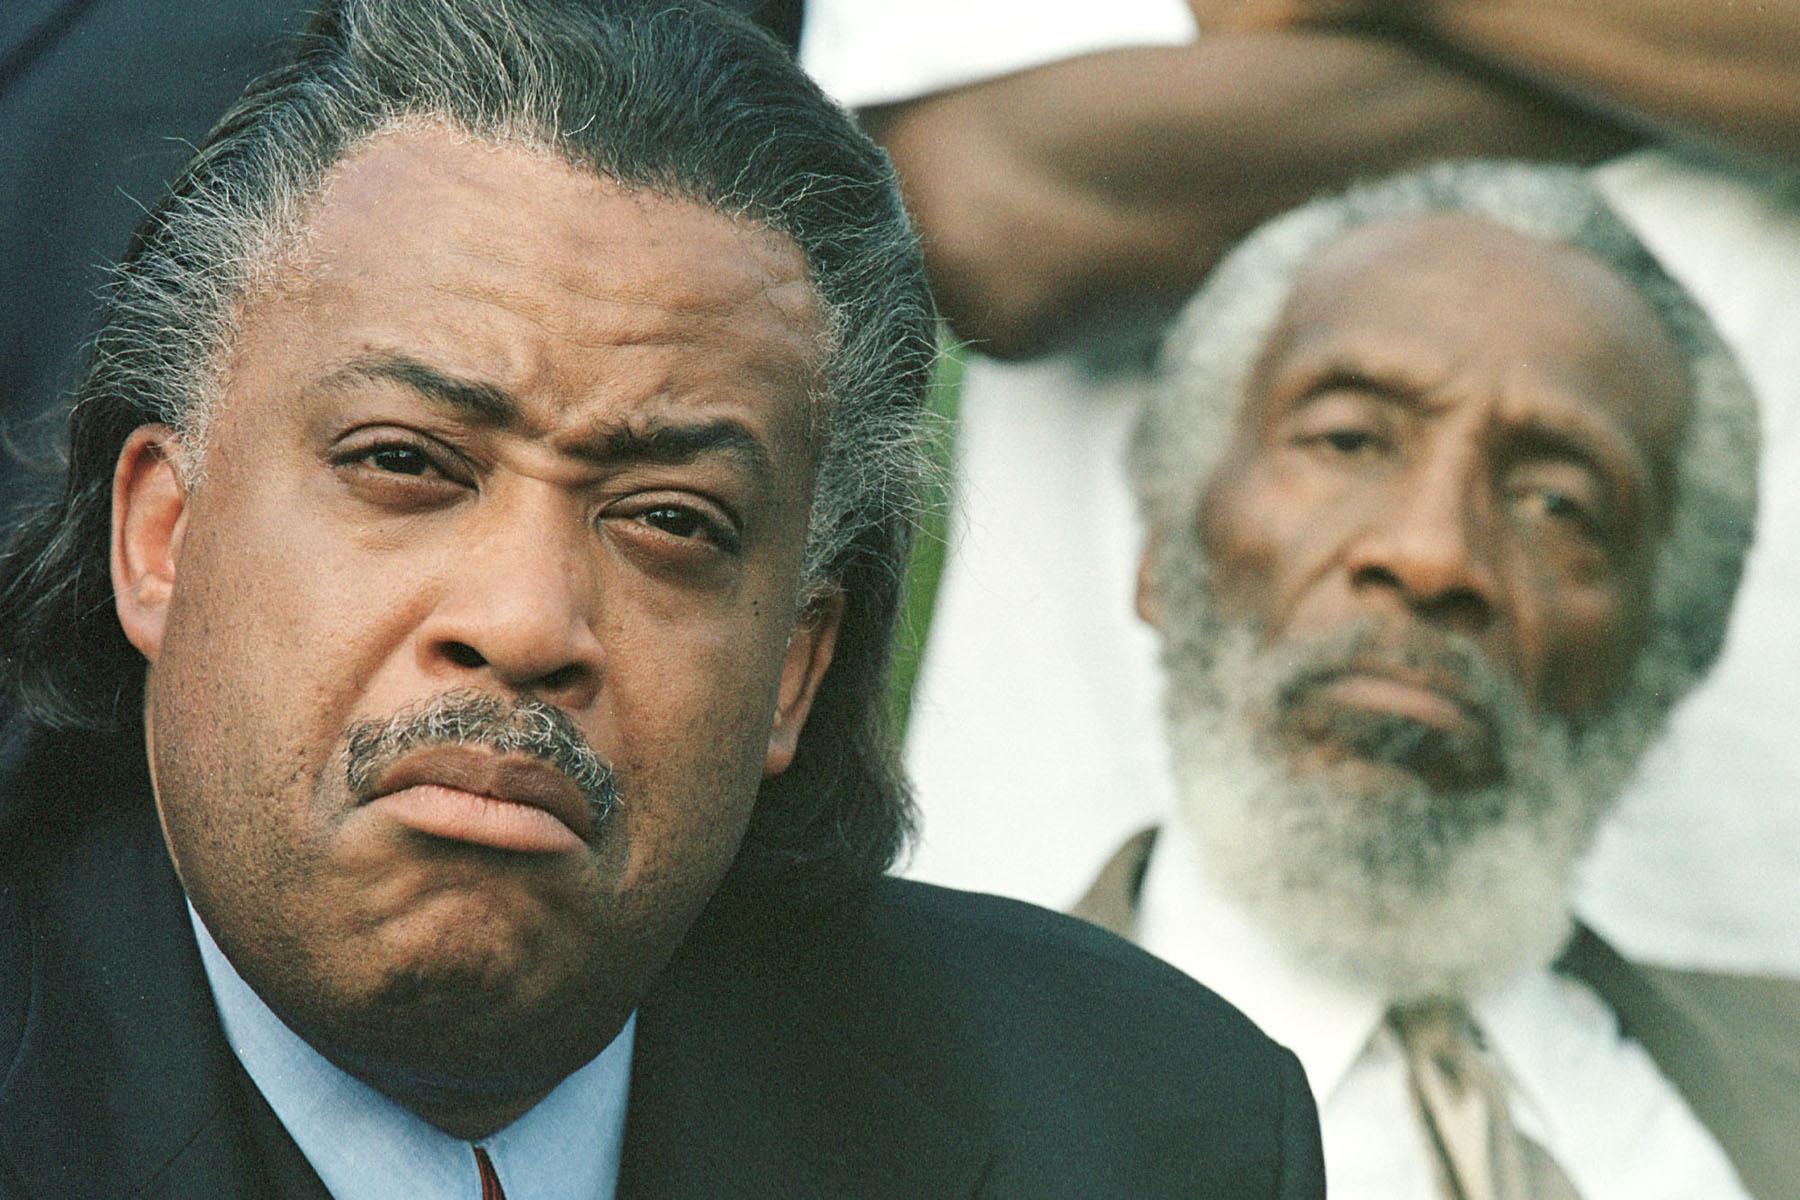 The Reverend Al Sharpton, left, and activist Dick Gregory attend a rally in Dearborn, Mich. on July 5, 2000.